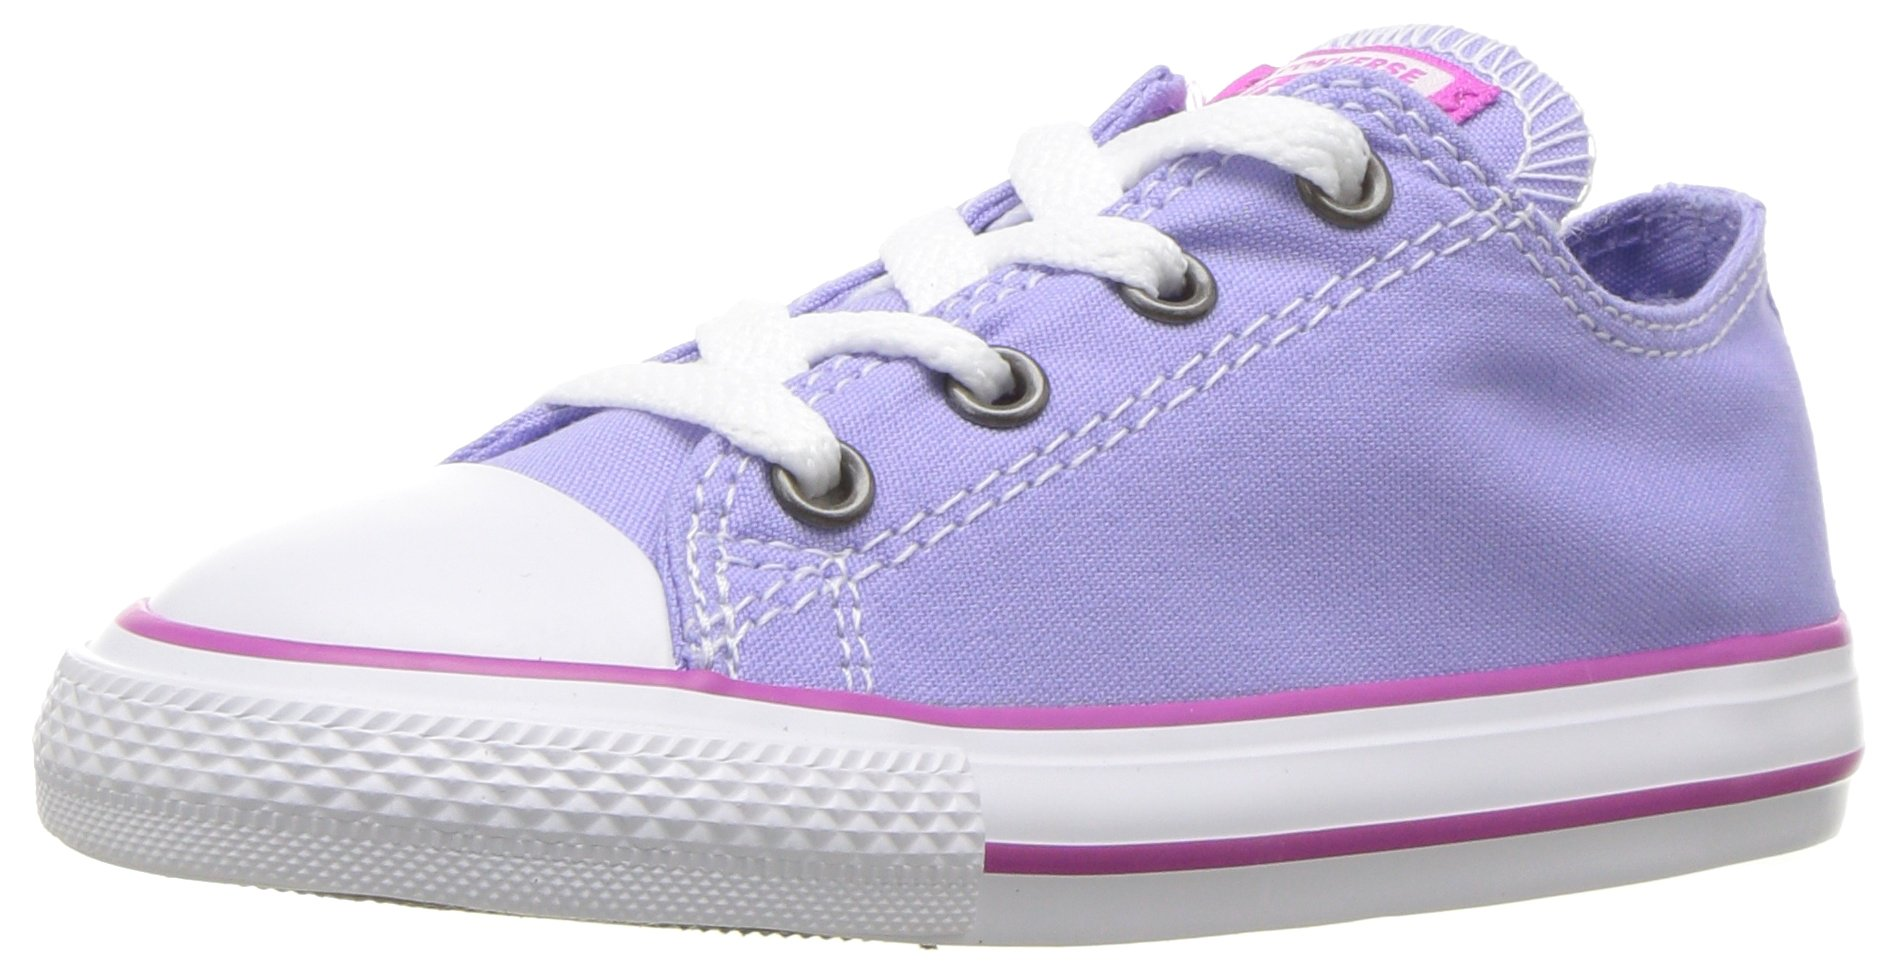 Converse Baby Chuck Taylor All Star Seasonal Canvas Low Top Sneaker, Twilight Pulse/Hyper Magenta, 3 M US Infant